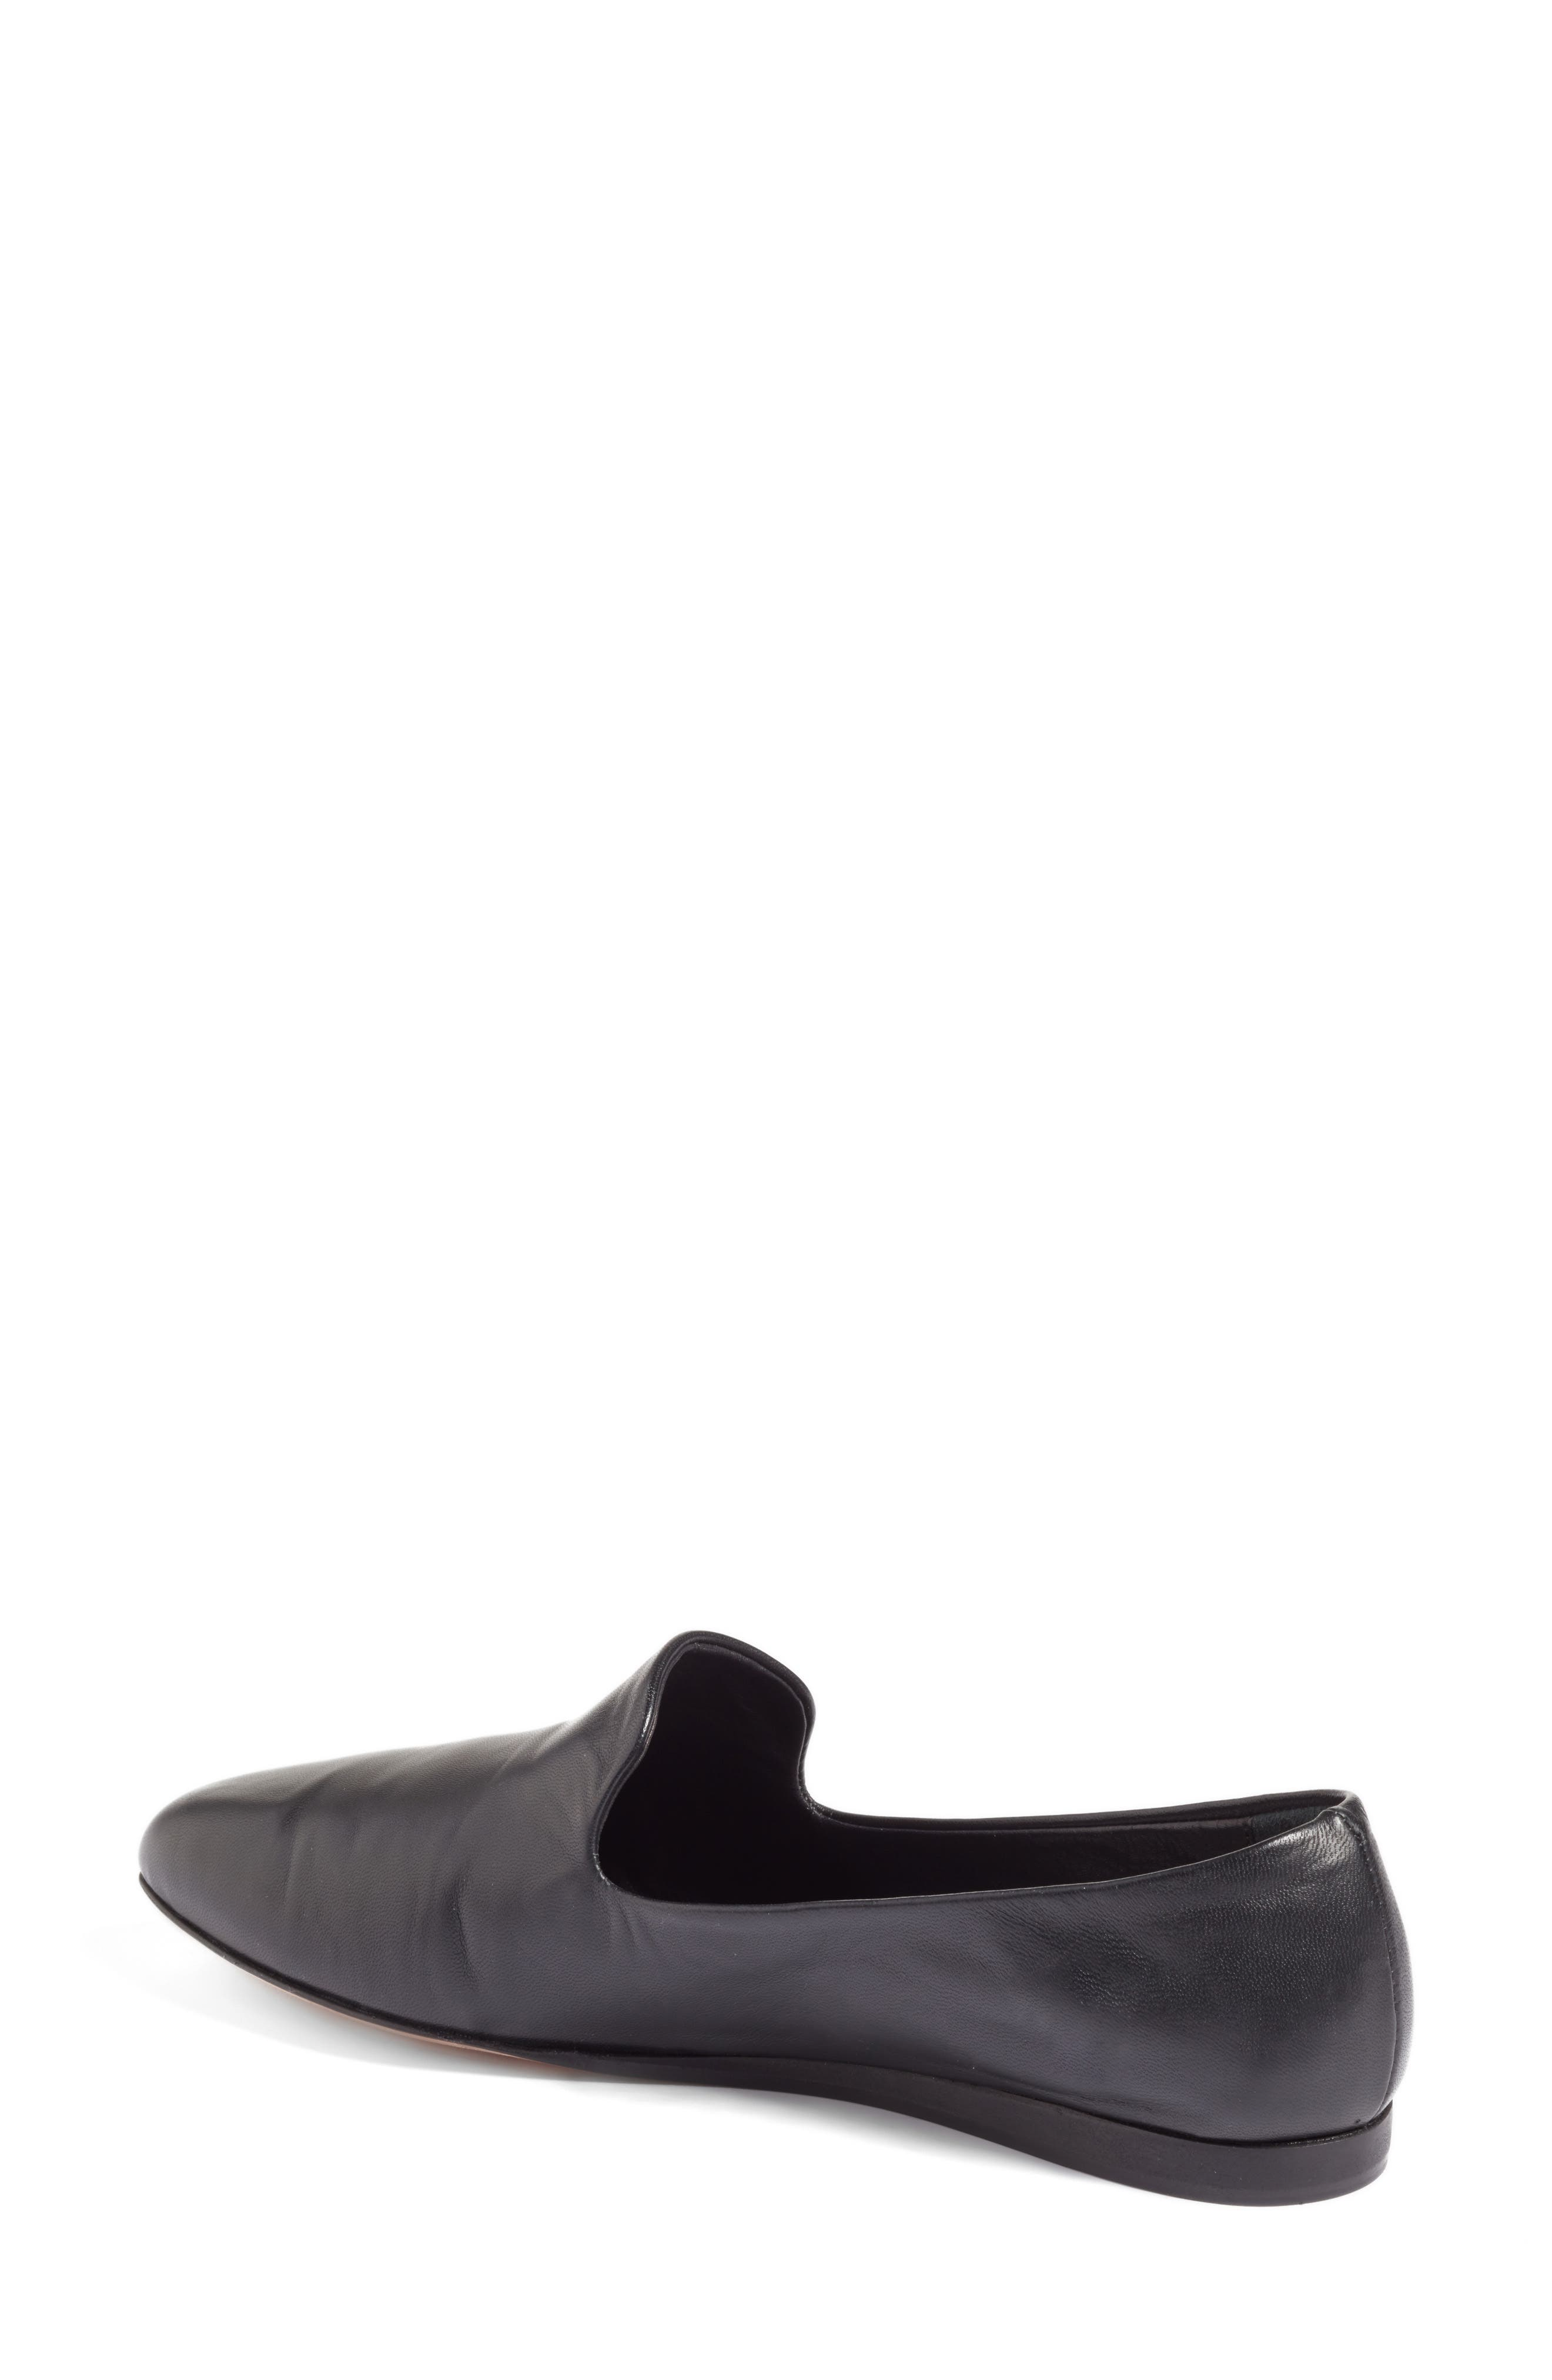 Alternate Image 2  - Veronica Beard Griffin Pointy Toe Loafer (Women)